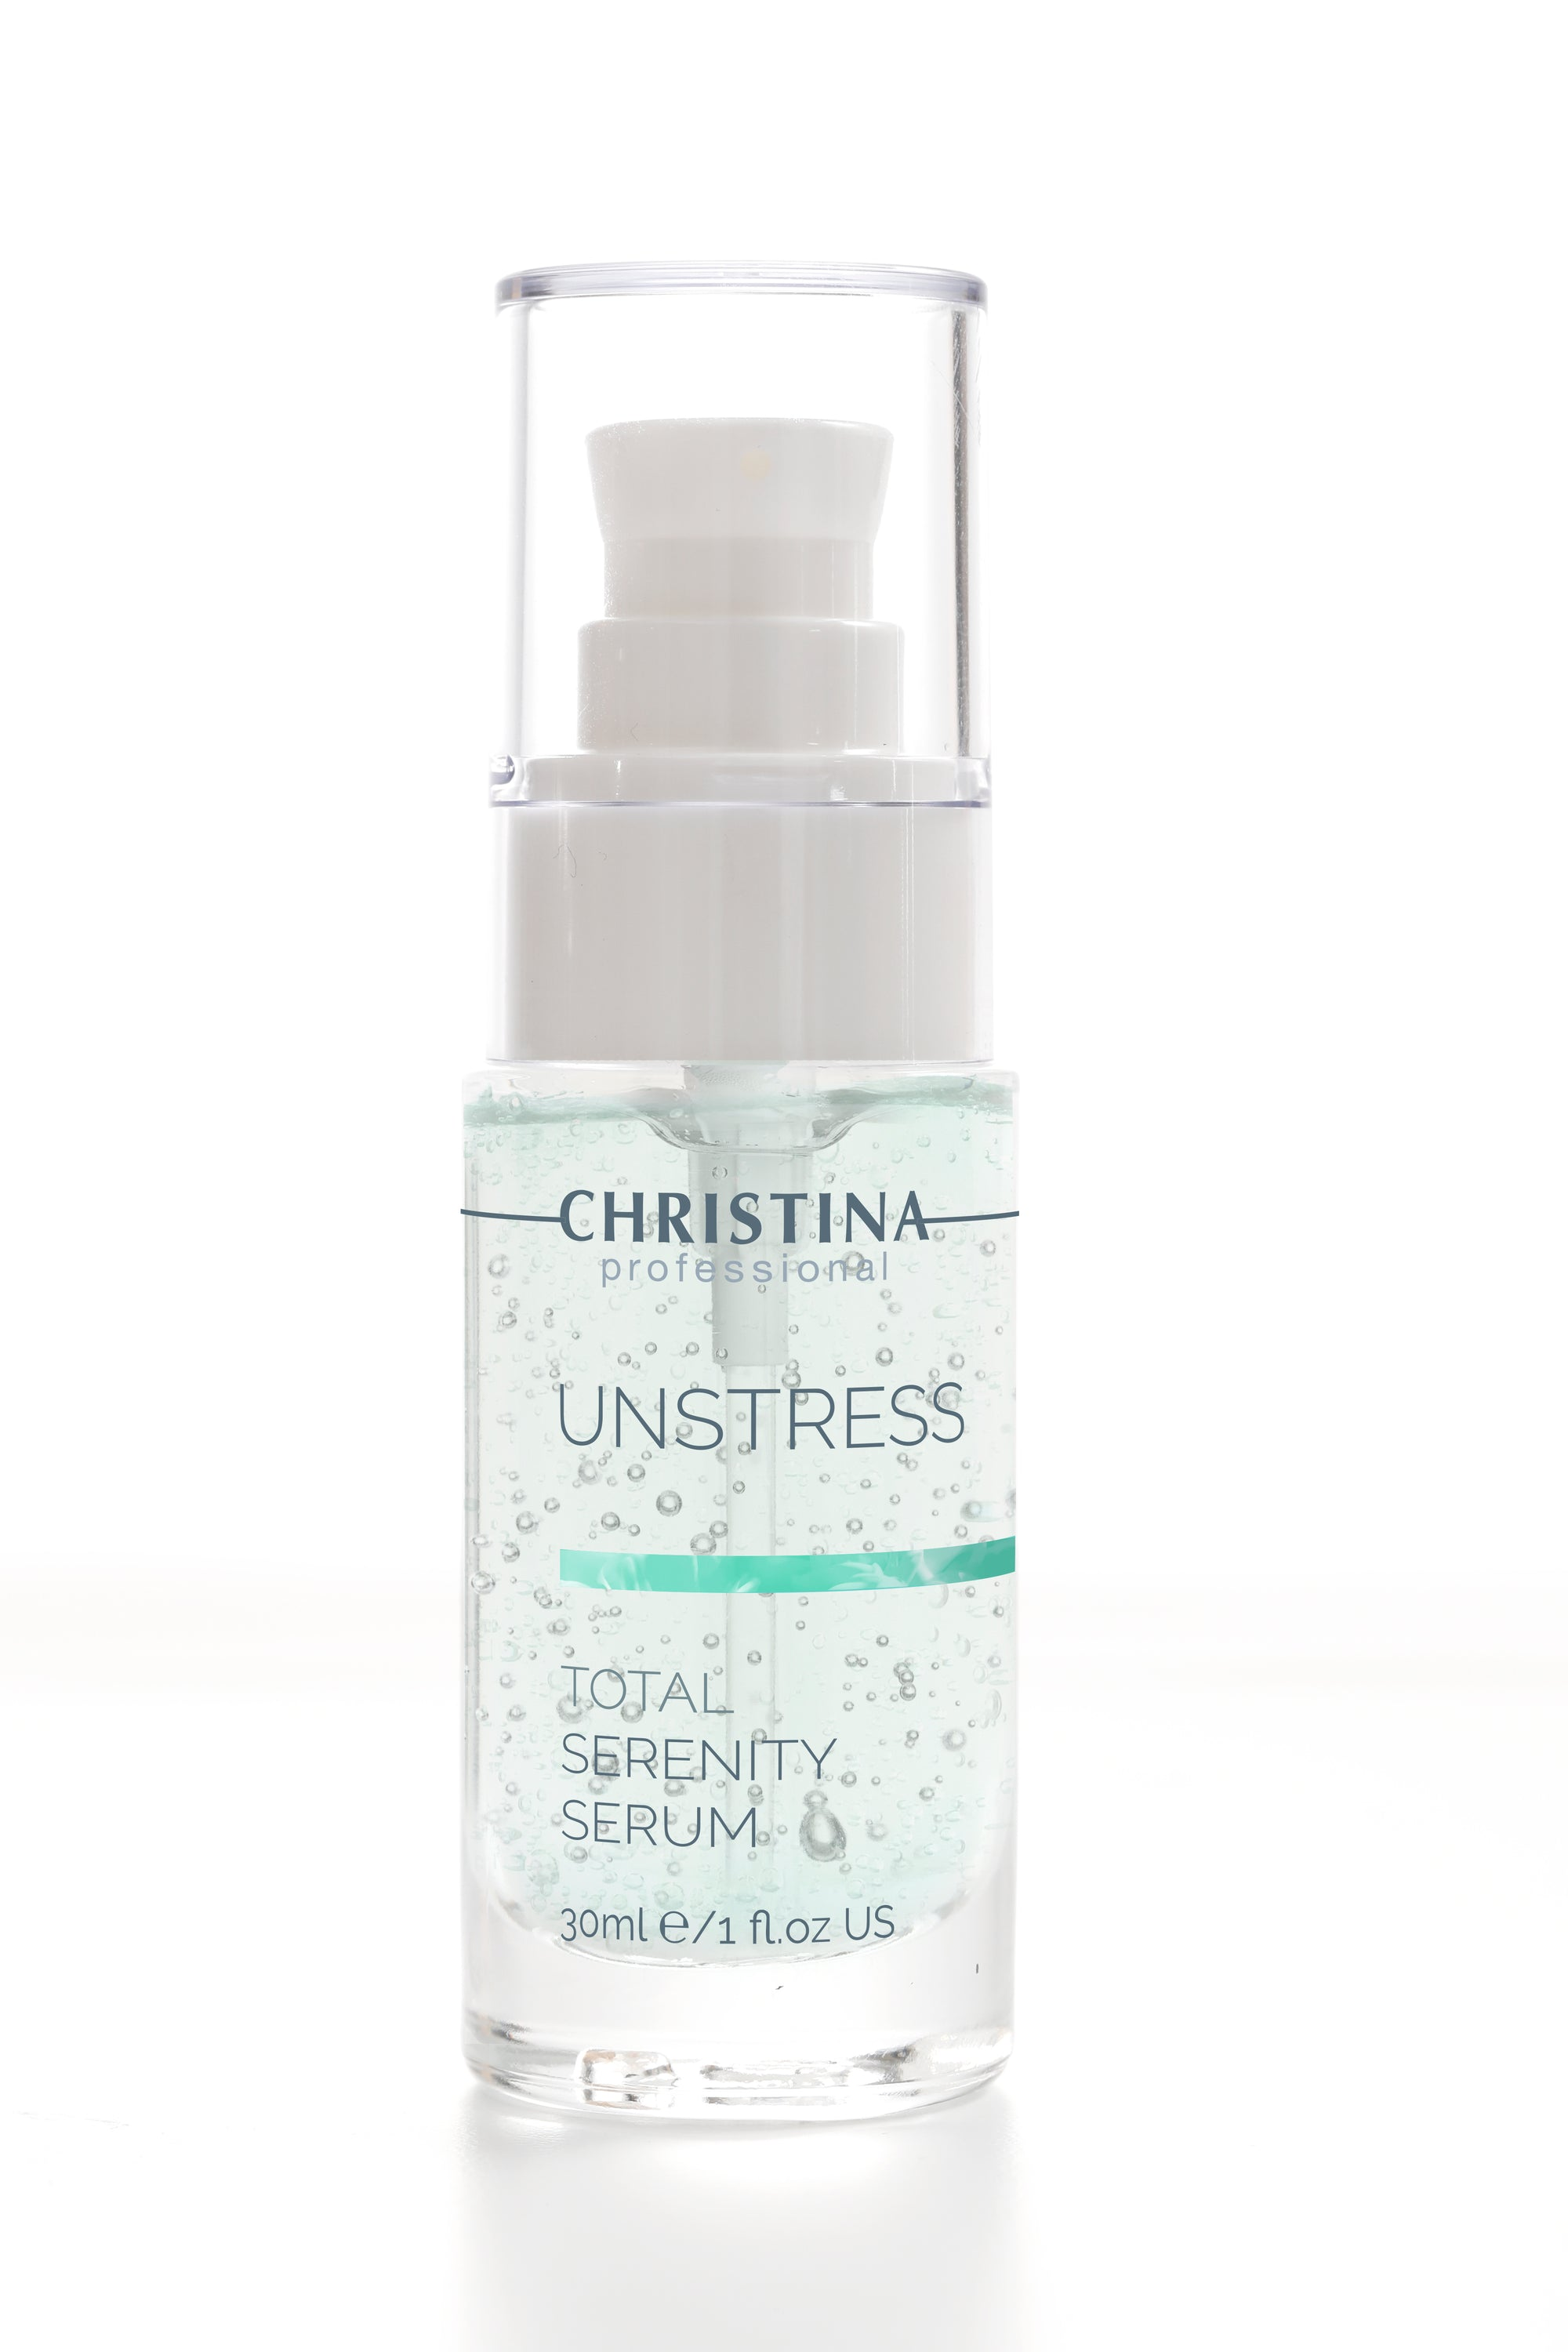 Unstress Total Serenity Serum